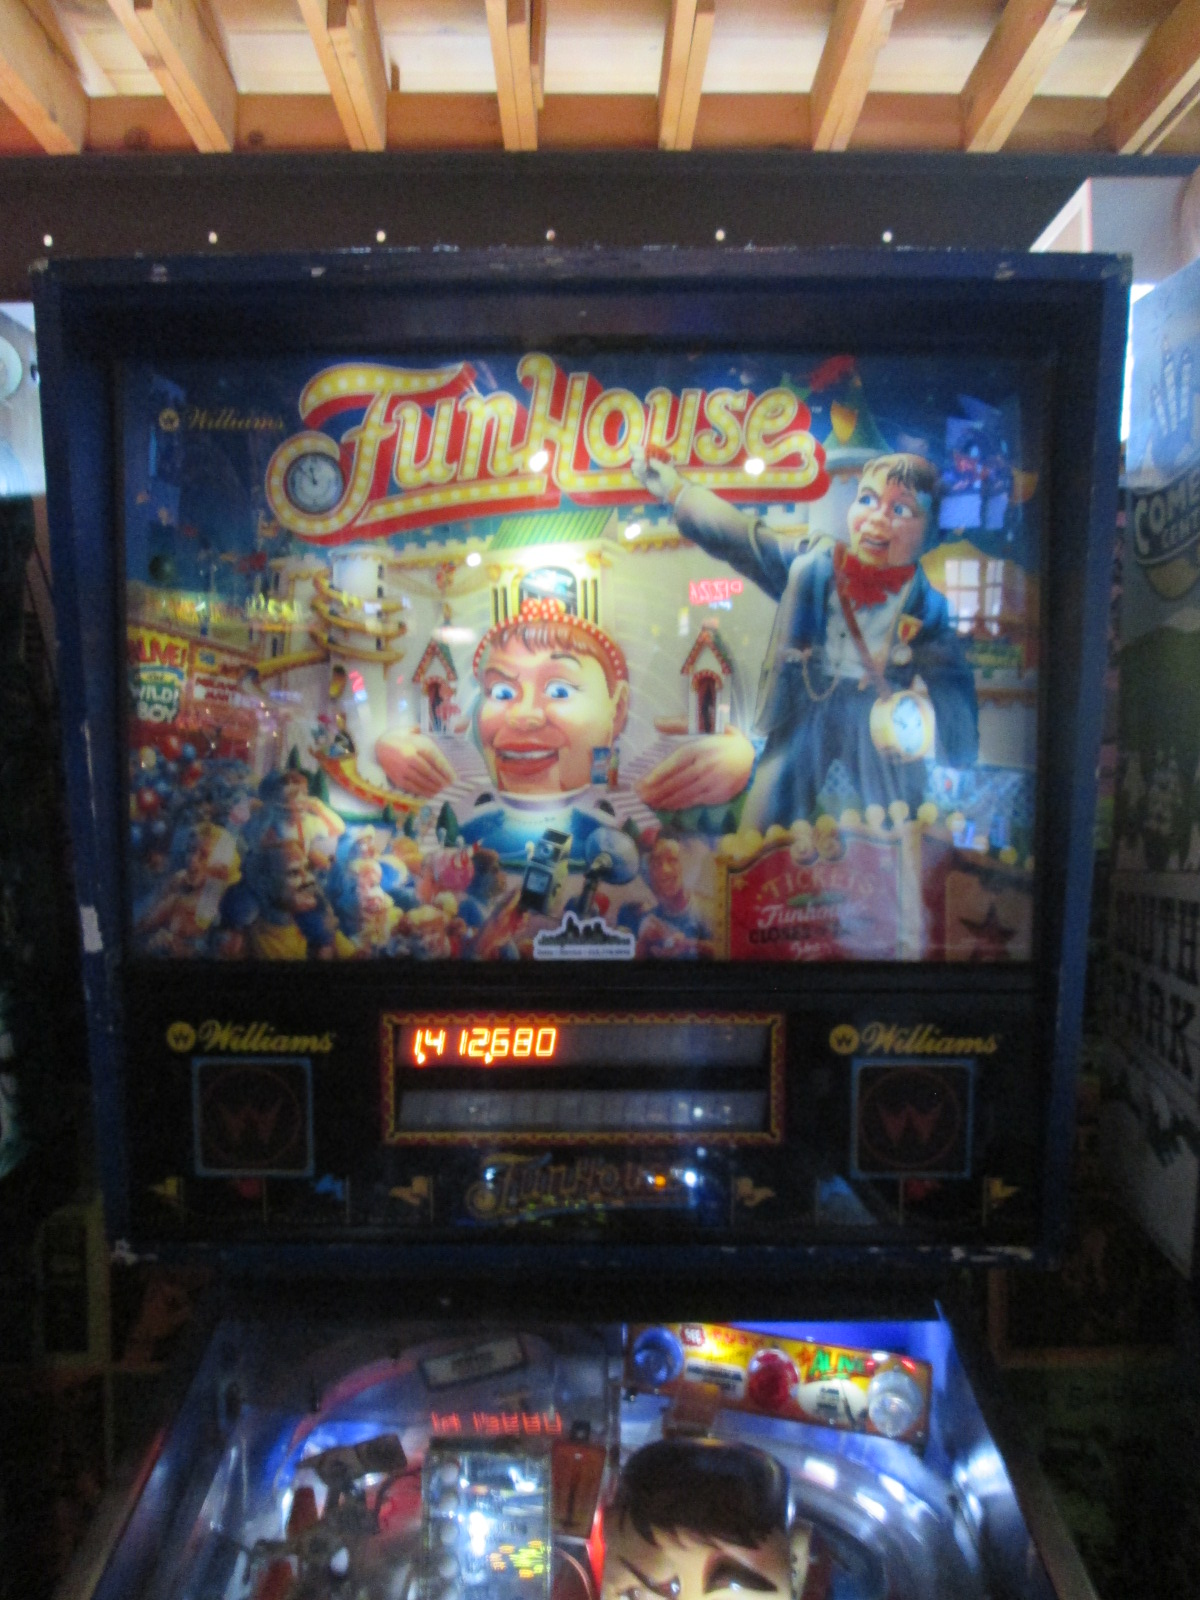 ed1475: FunHouse (Pinball: 3 Balls) 1,412,680 points on 2016-08-28 16:29:00